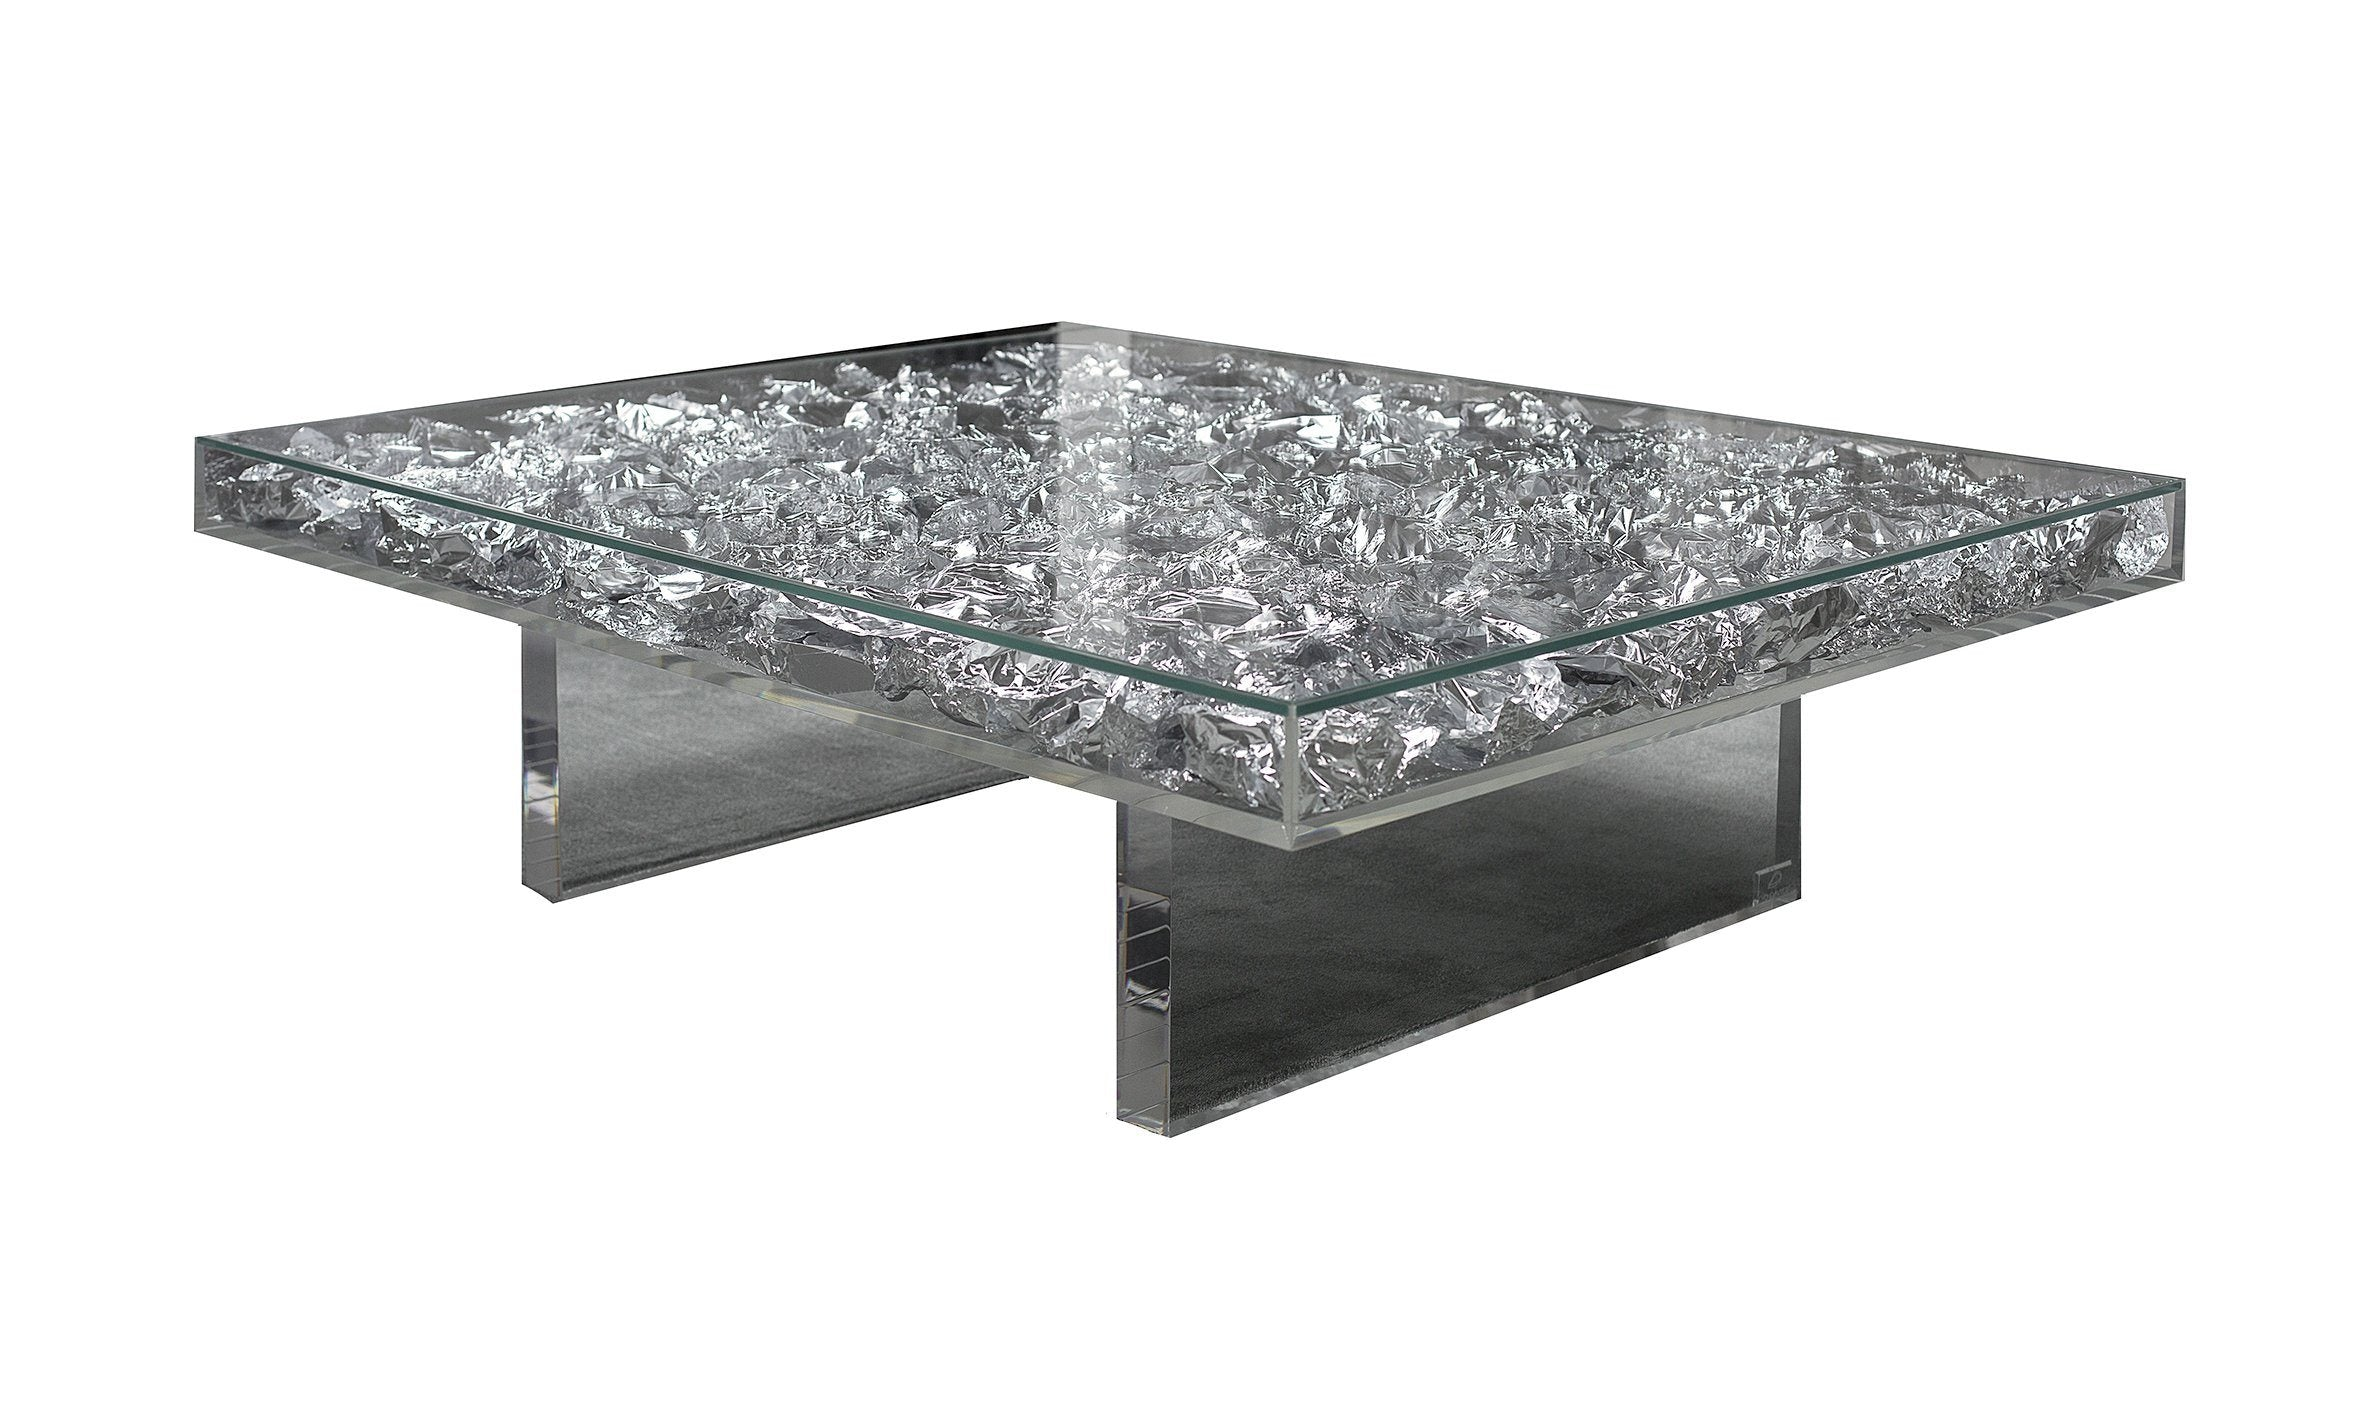 'Luna Table' by Dio Davies - A Modern Grand Tour